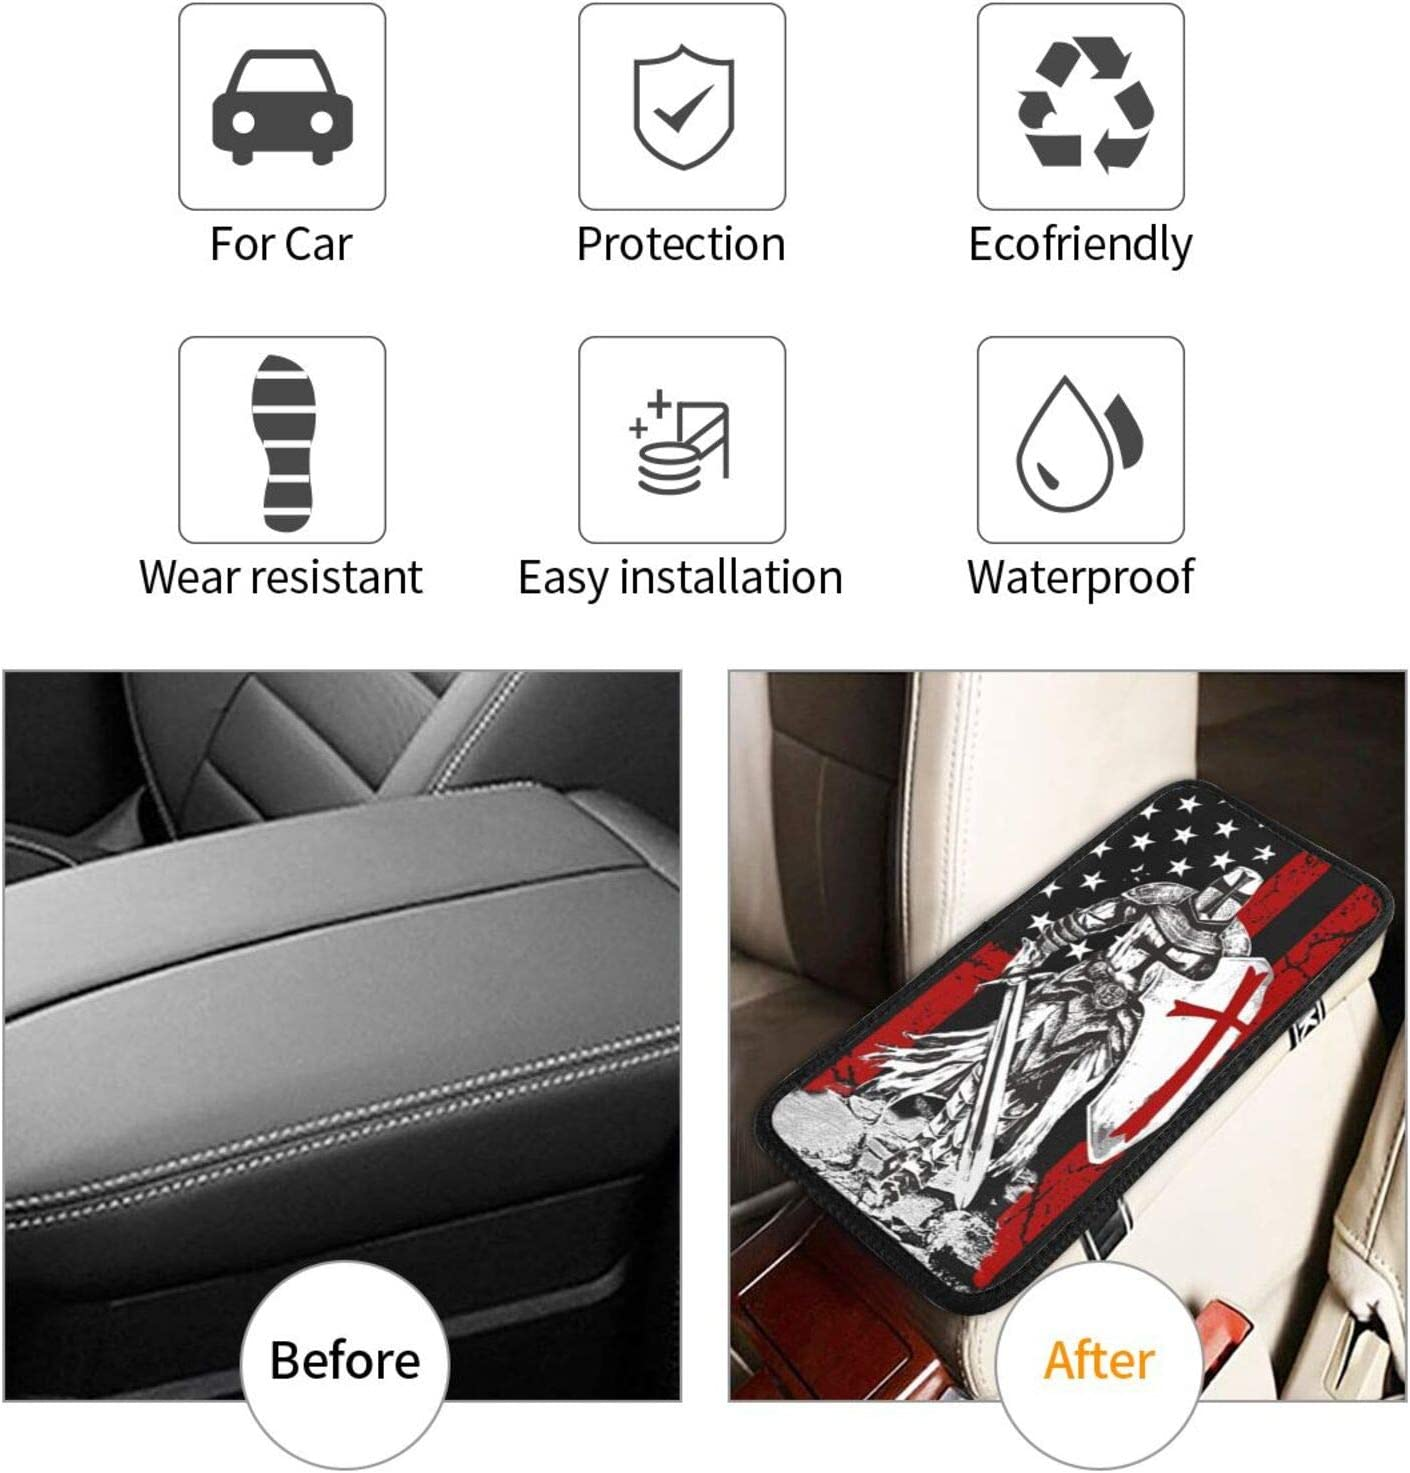 FUNINDIY Auto Center Console Pad Universal Car Armrest Seat Box Cover Protector Waterproof Car Armrest Cover for Most Vehicle SUV Truck